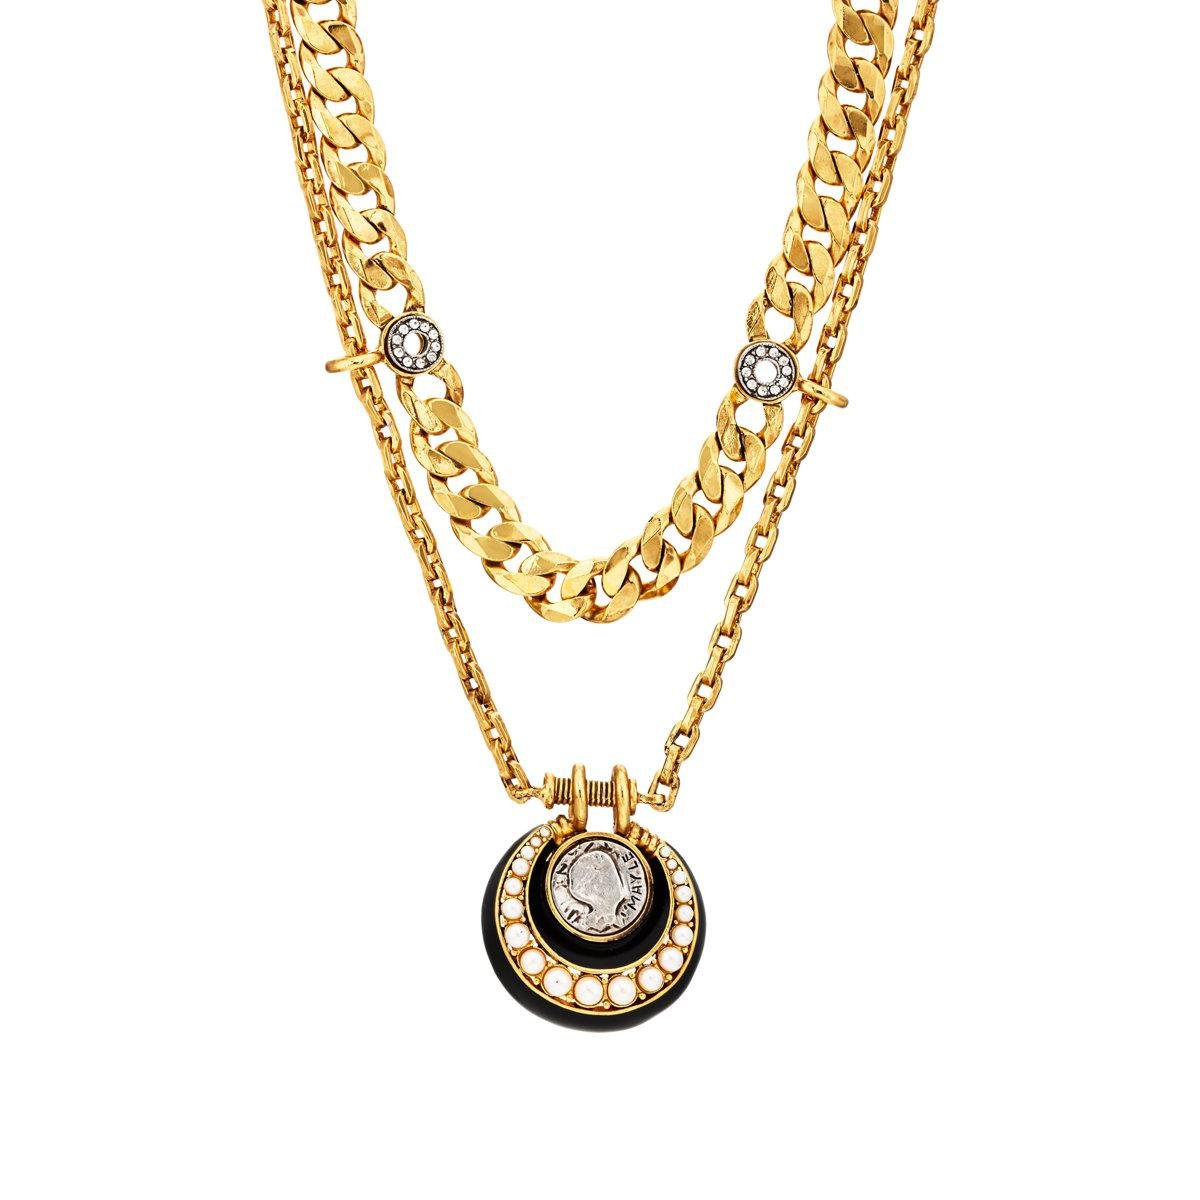 Maison Mayle Womens Confetti Necklace ElHlWO